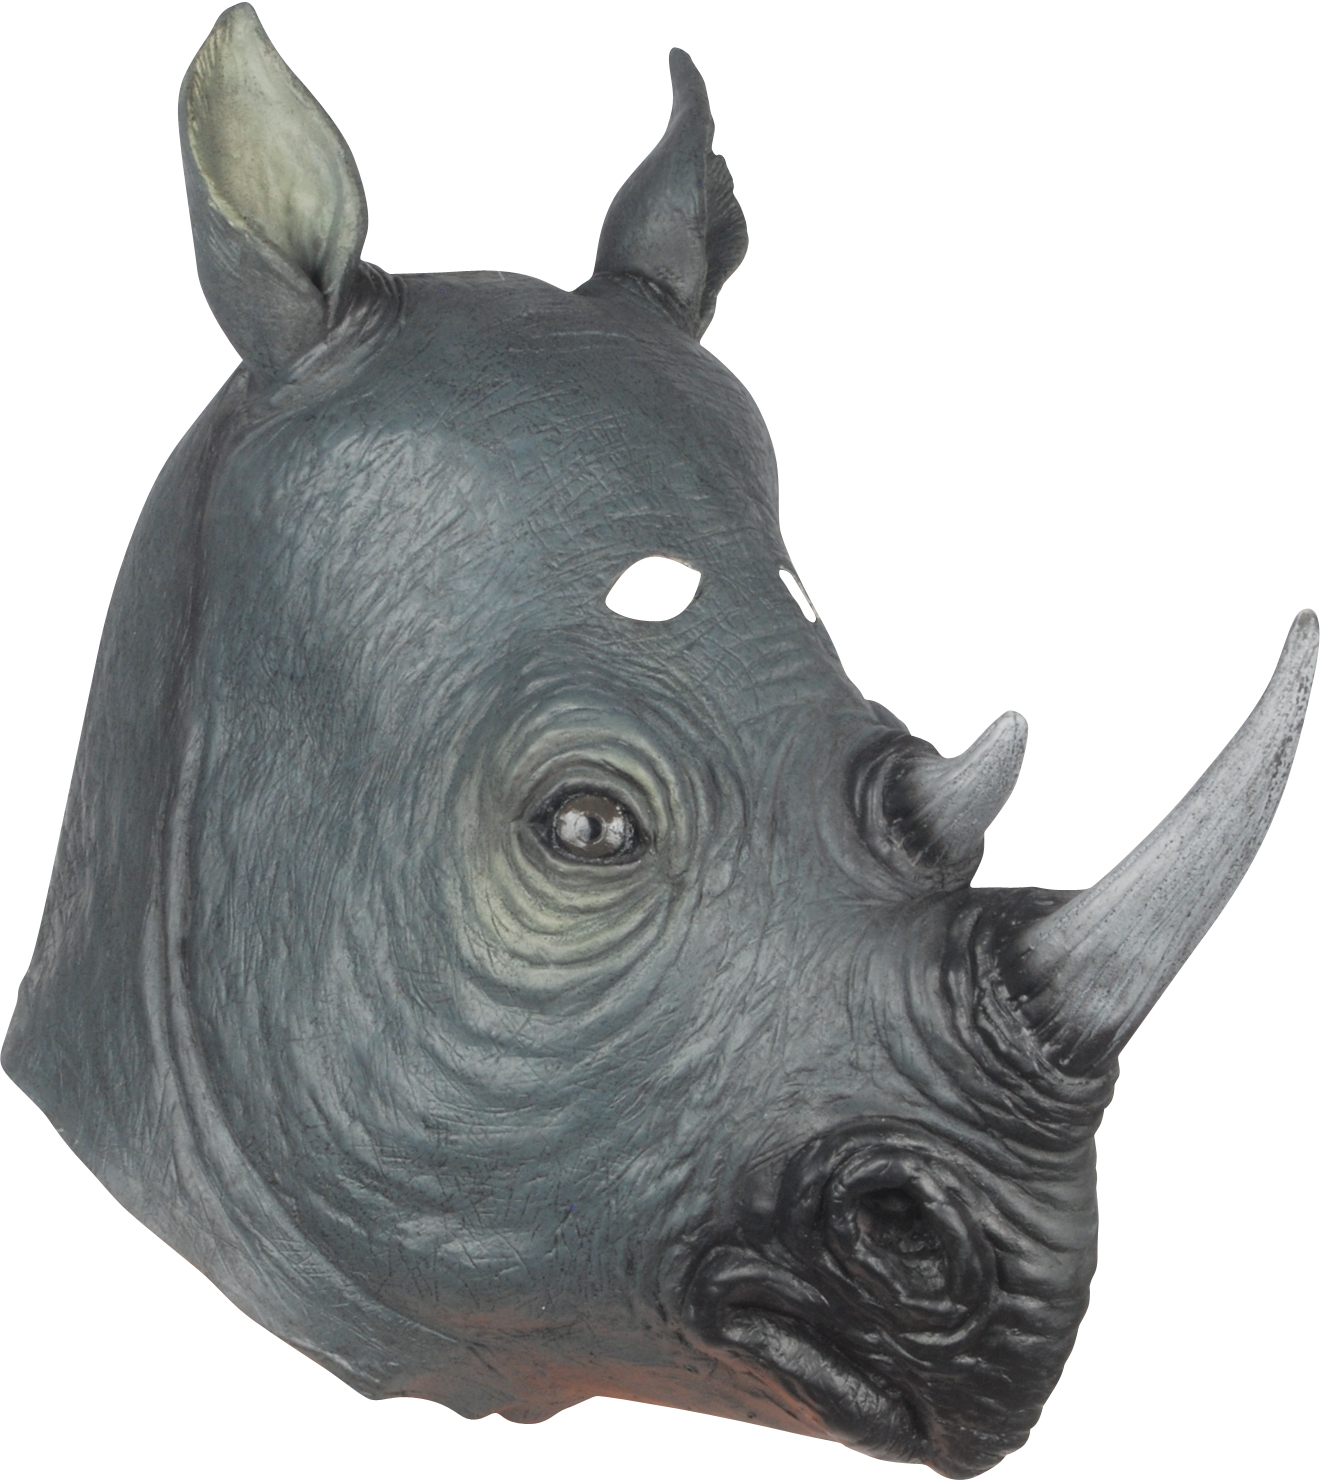 Loftus Realistic Rhinoceros Costume Full Head Mask, Grey Black, One Size